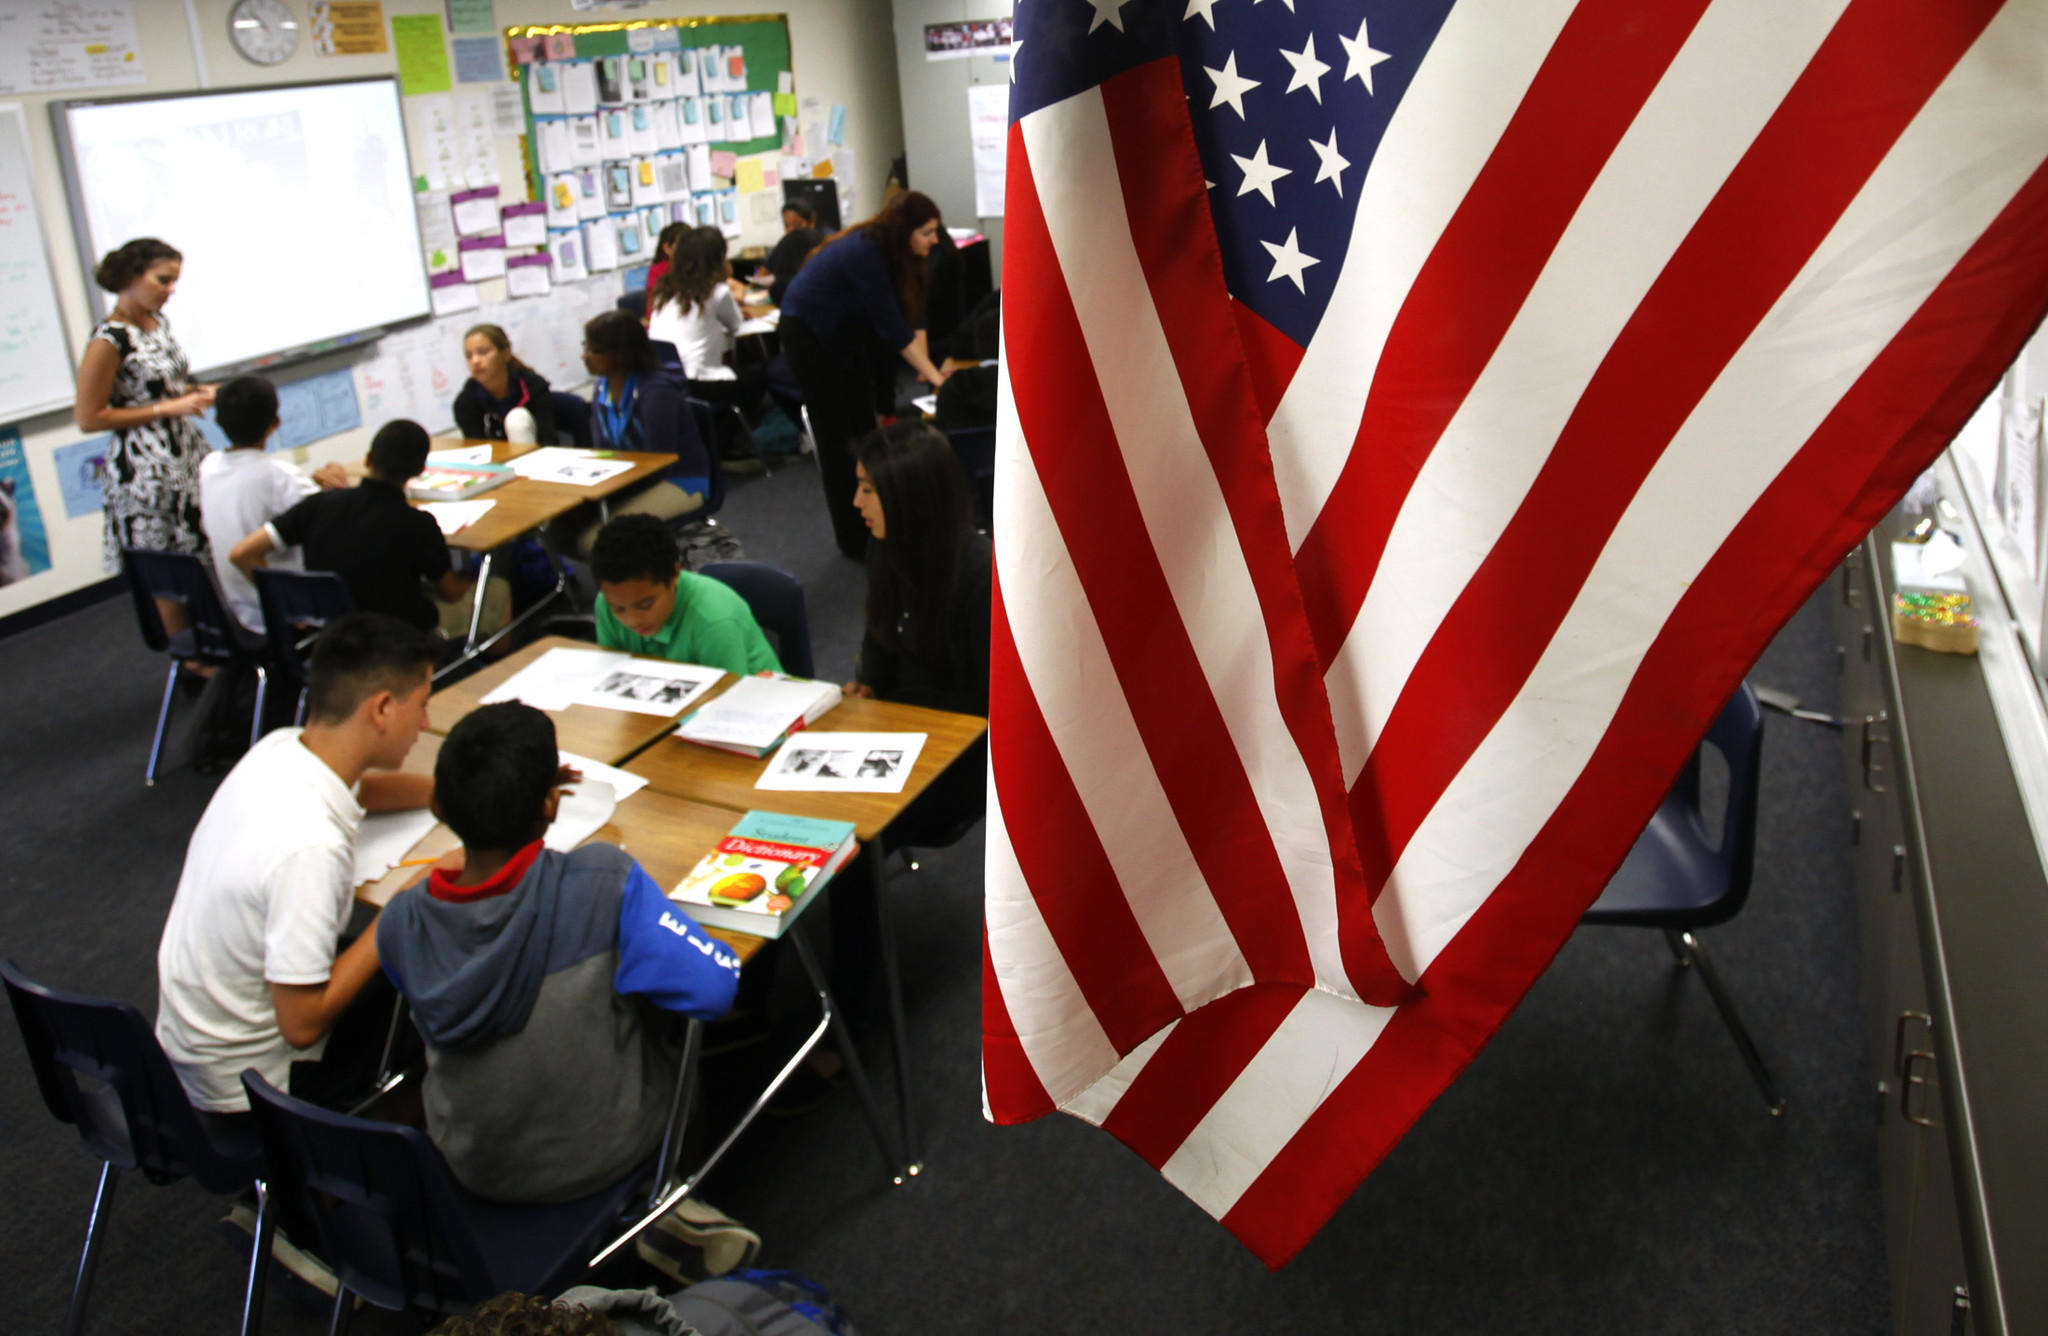 Californians support new national learning standards known as Common Core, a new survey found. In Santiago Elementary School in Santa Ana, teachers are already using the new standards to emphasize critical thinking and prepare students for more complex tests.